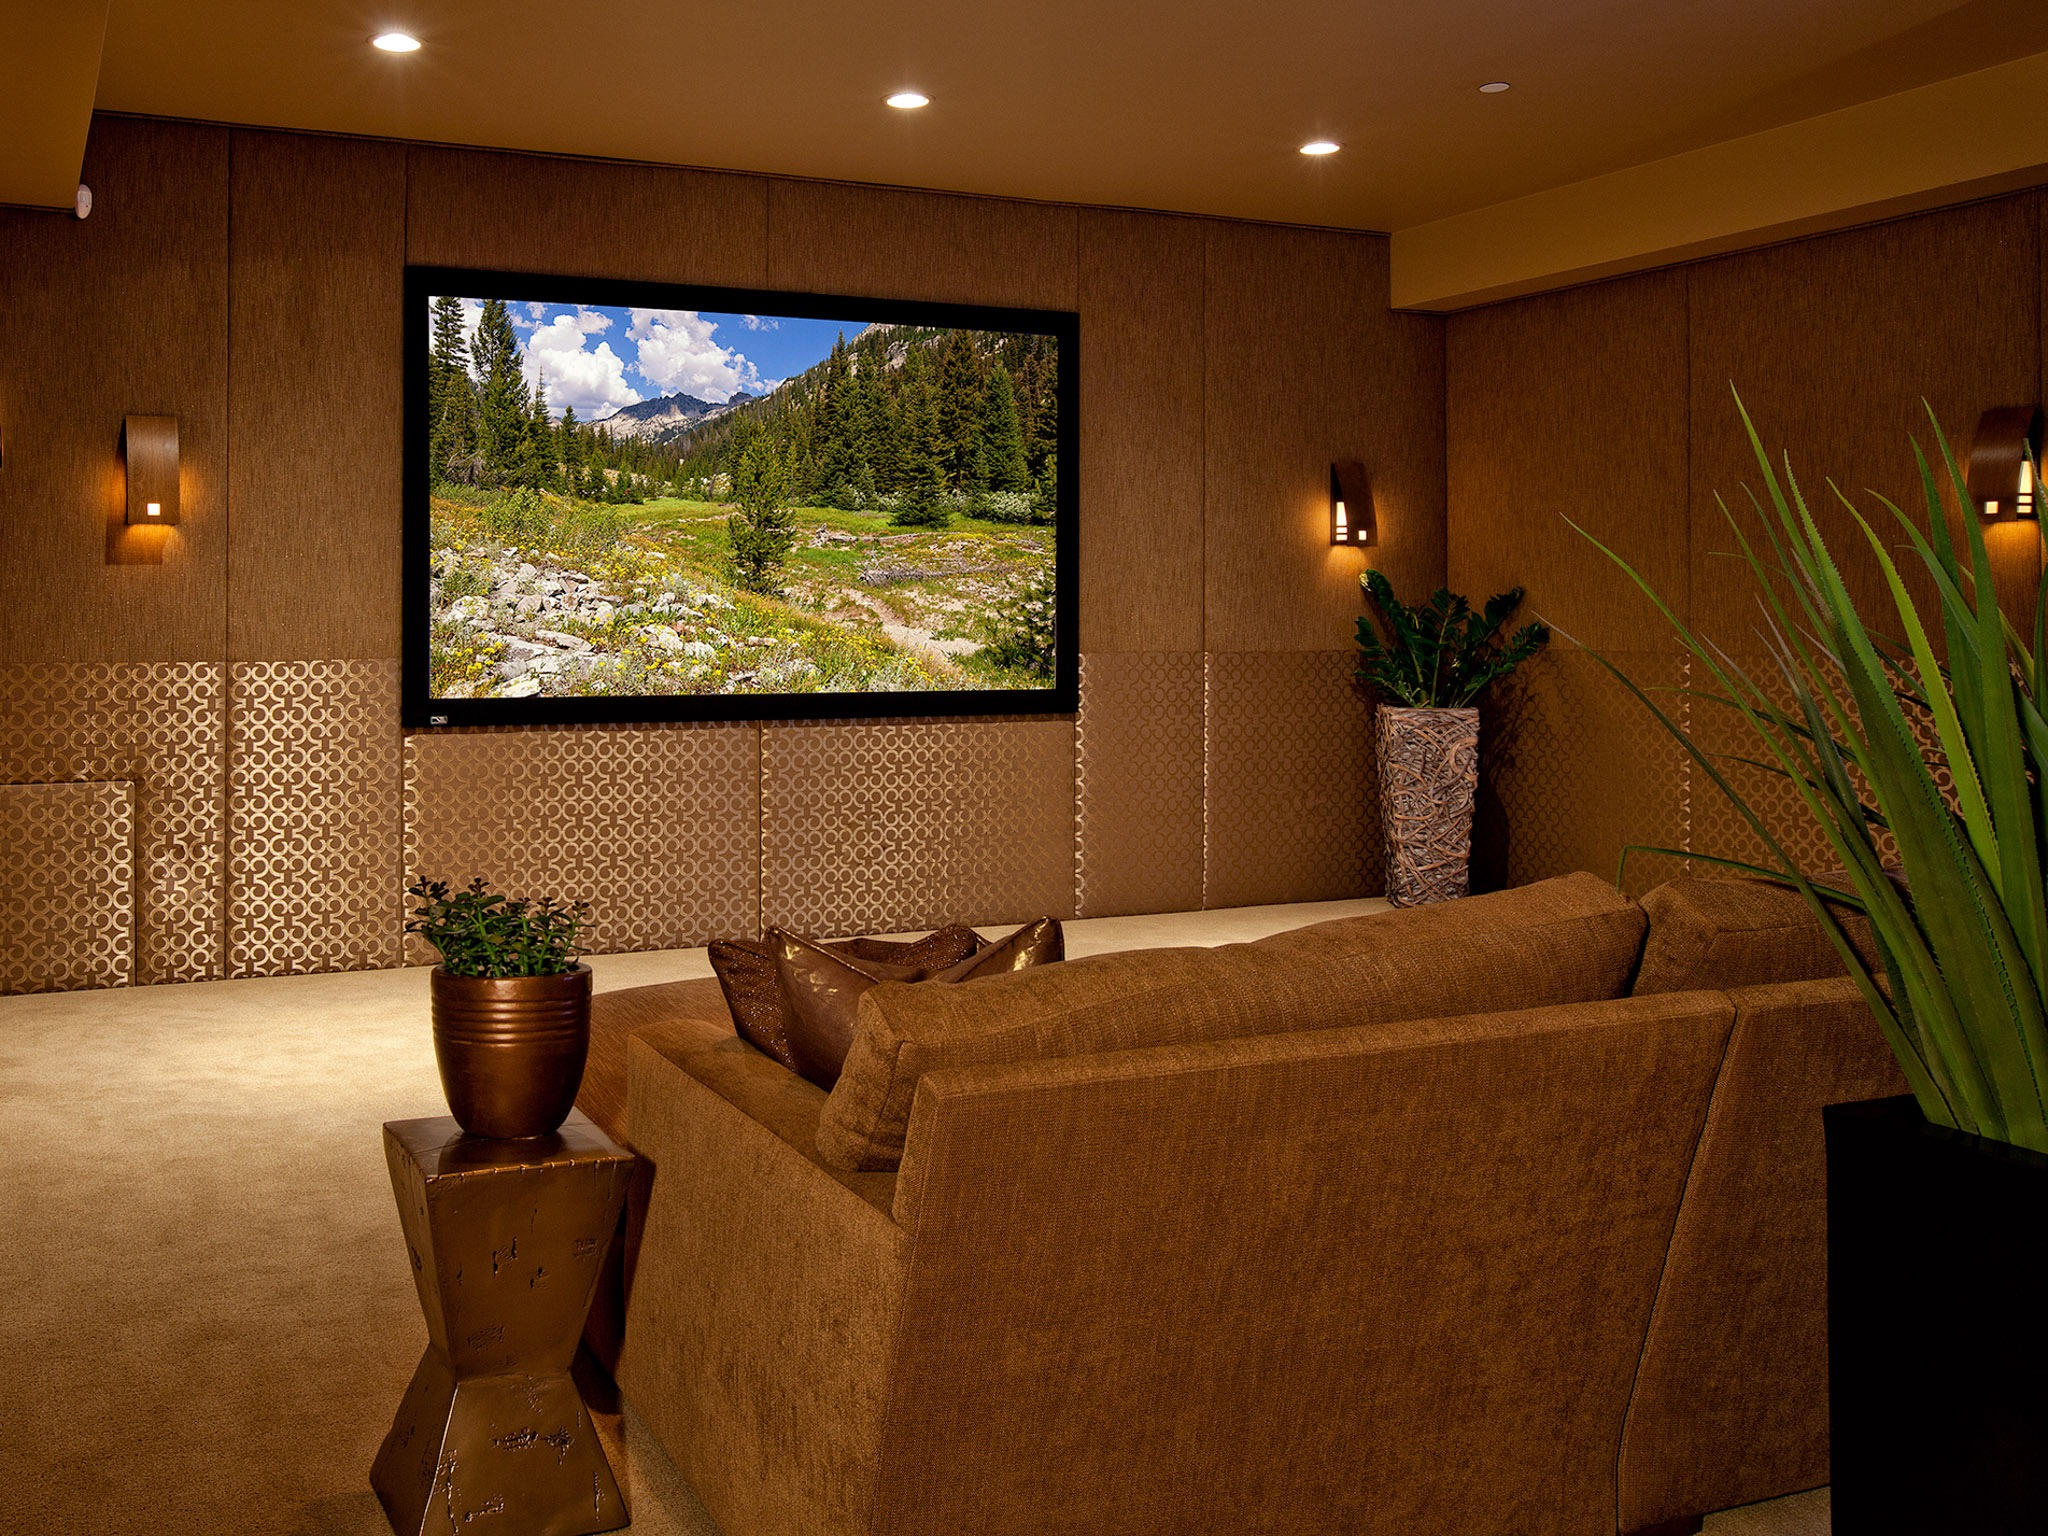 Entertainment Room Decor And Set Up For New Home 17509